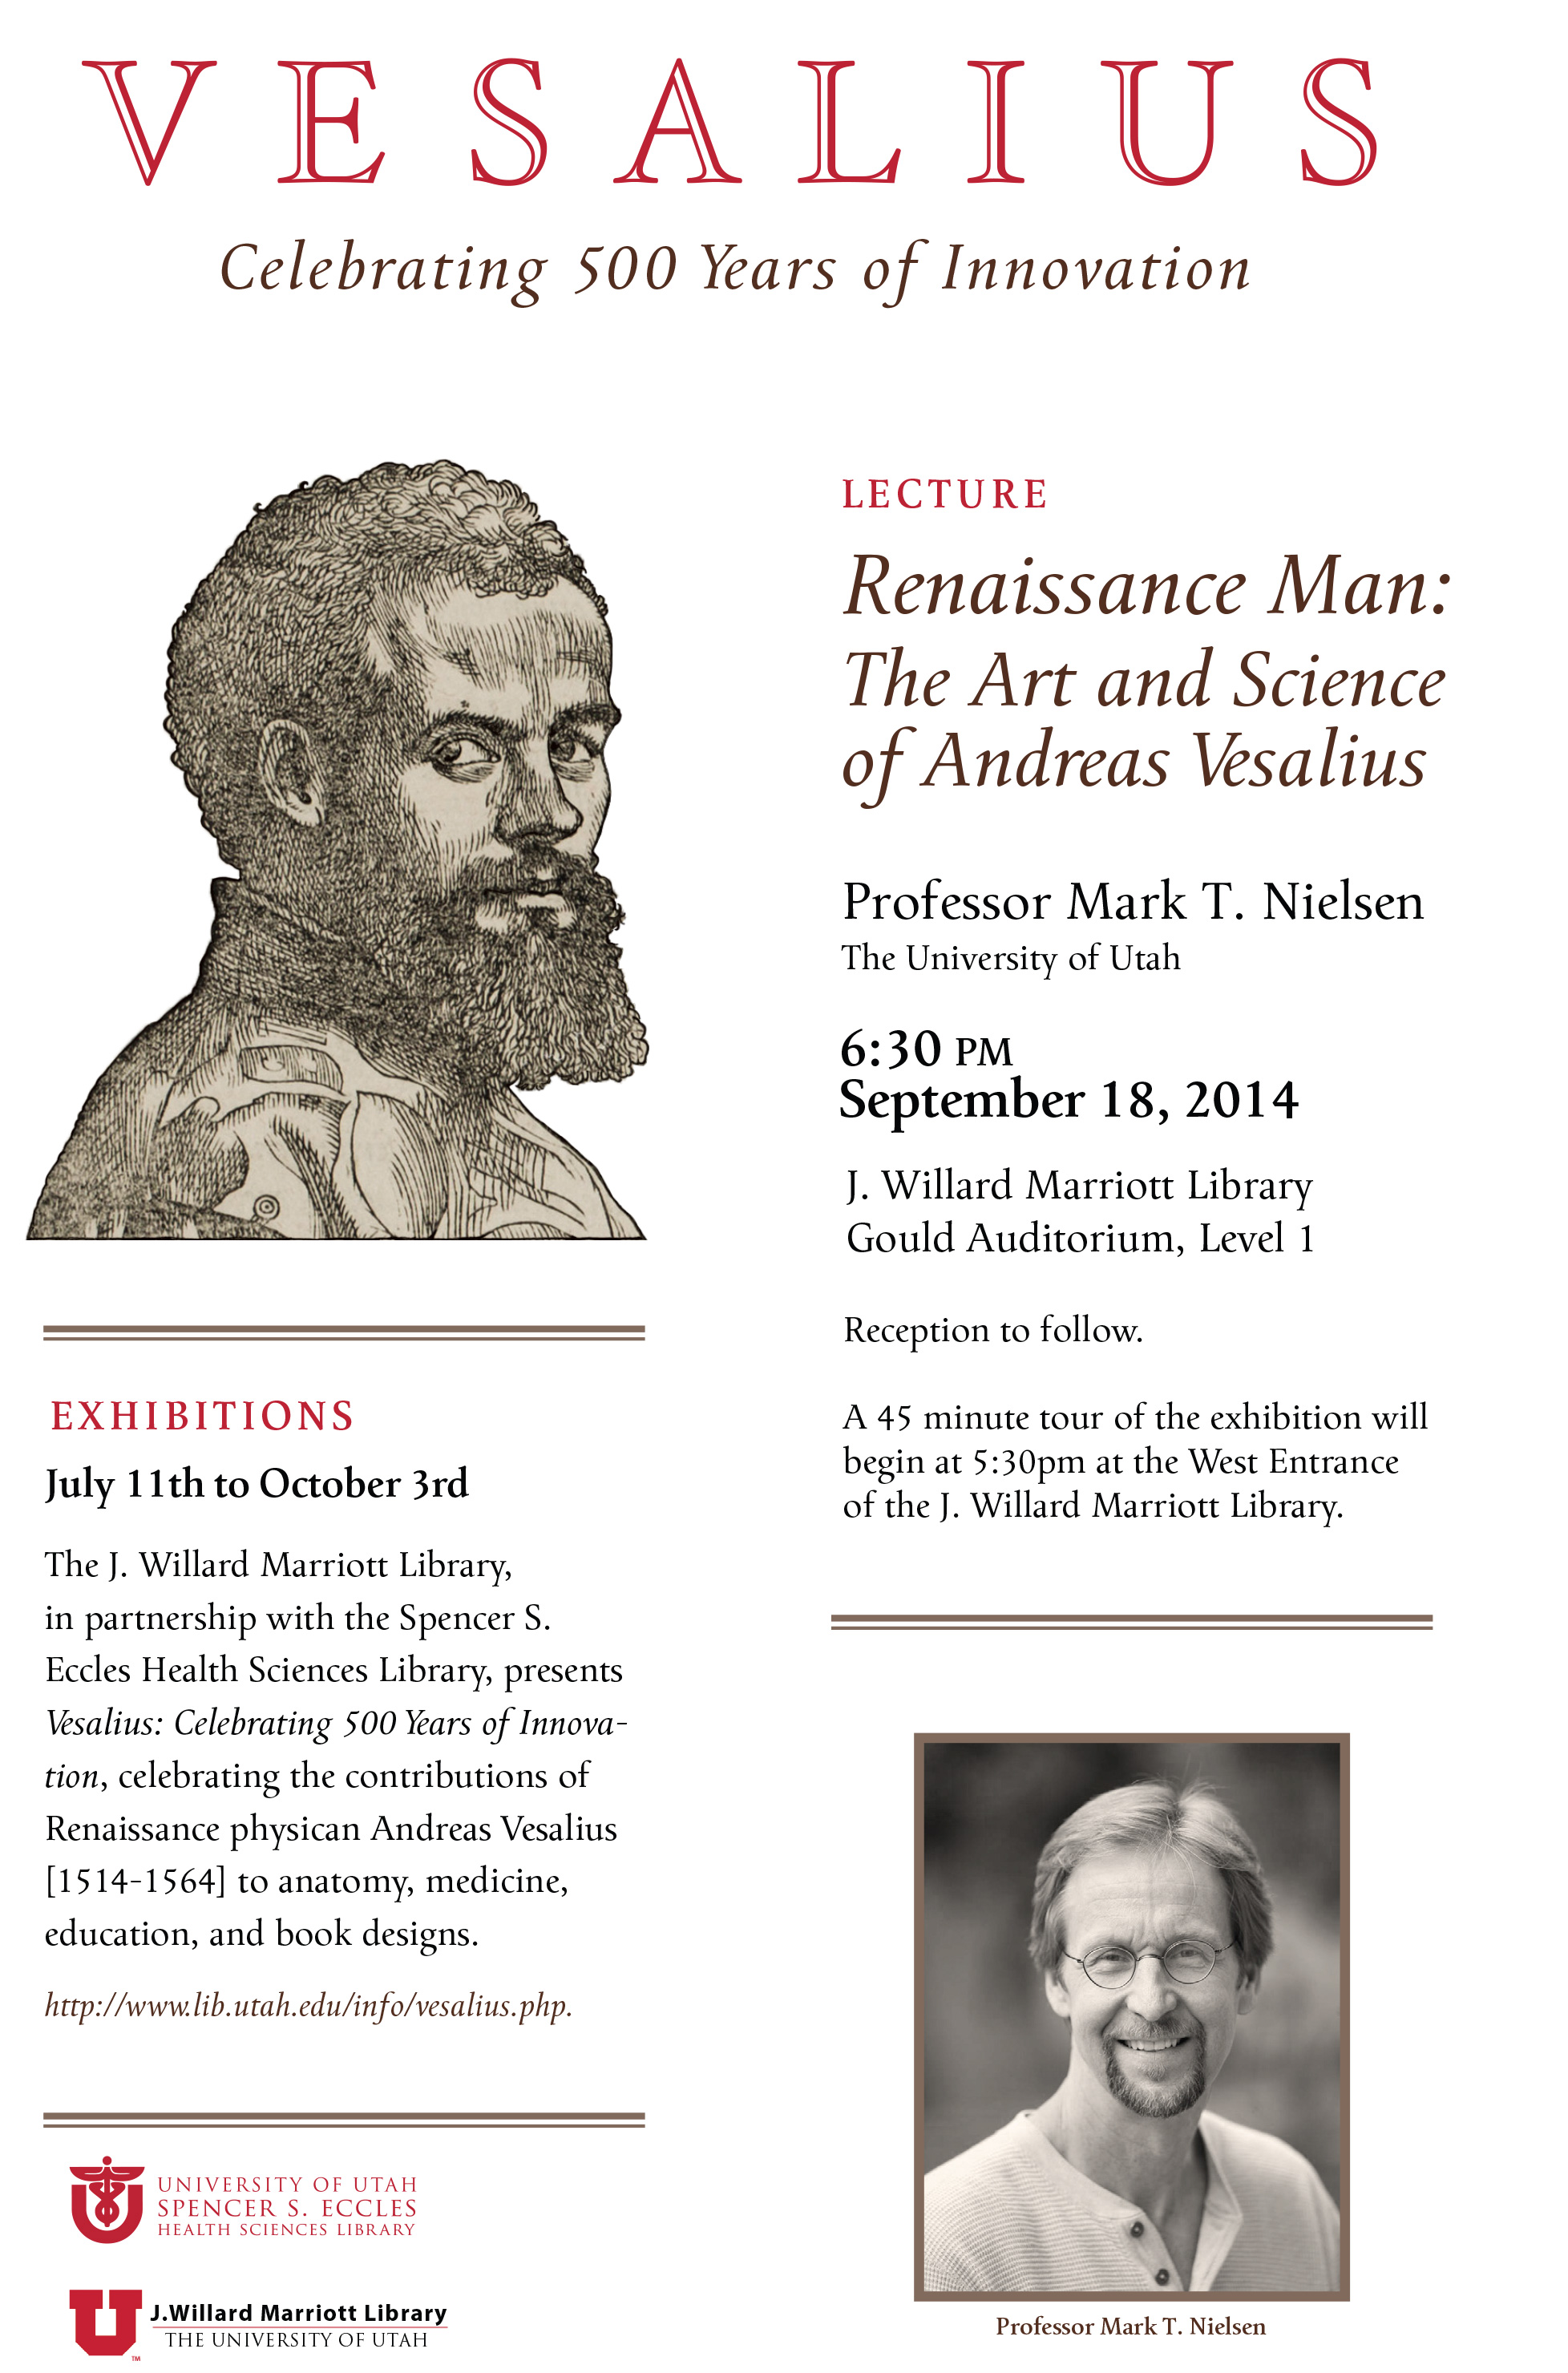 Prof. Mark Nielsen lecture 9/18/2014 at 6:30 pm Gould Auditorium, Level 1 - Lecture poster designed by Jeff Davis